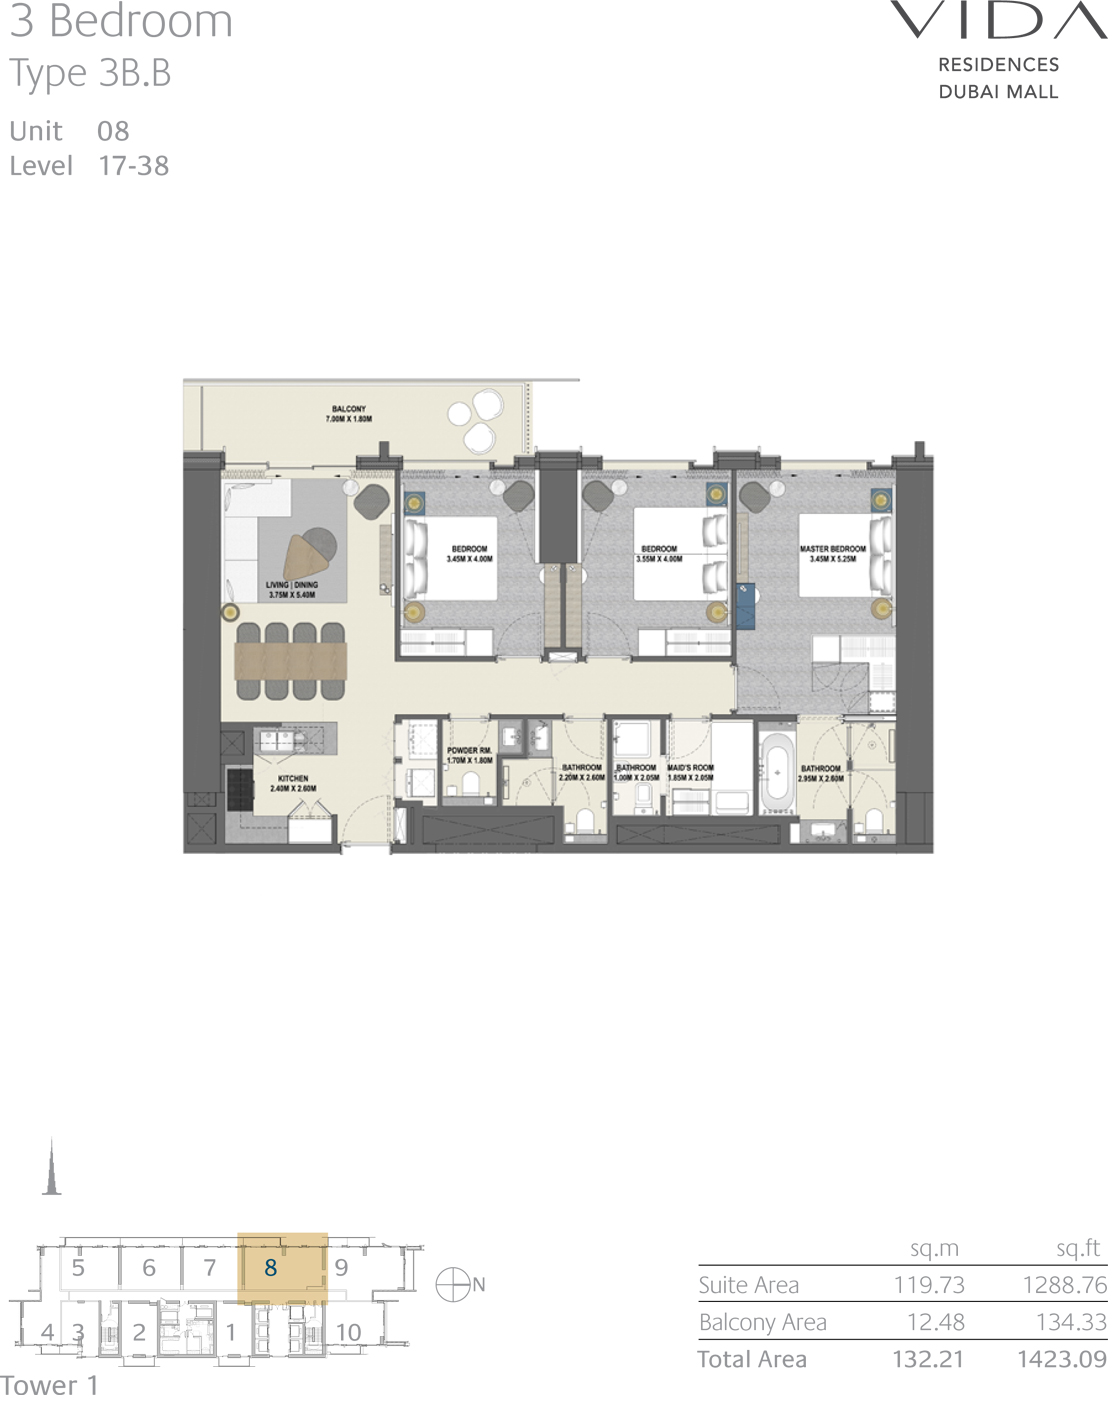 3 Bedroom Type 3B.B Unit 08 Level 17-38